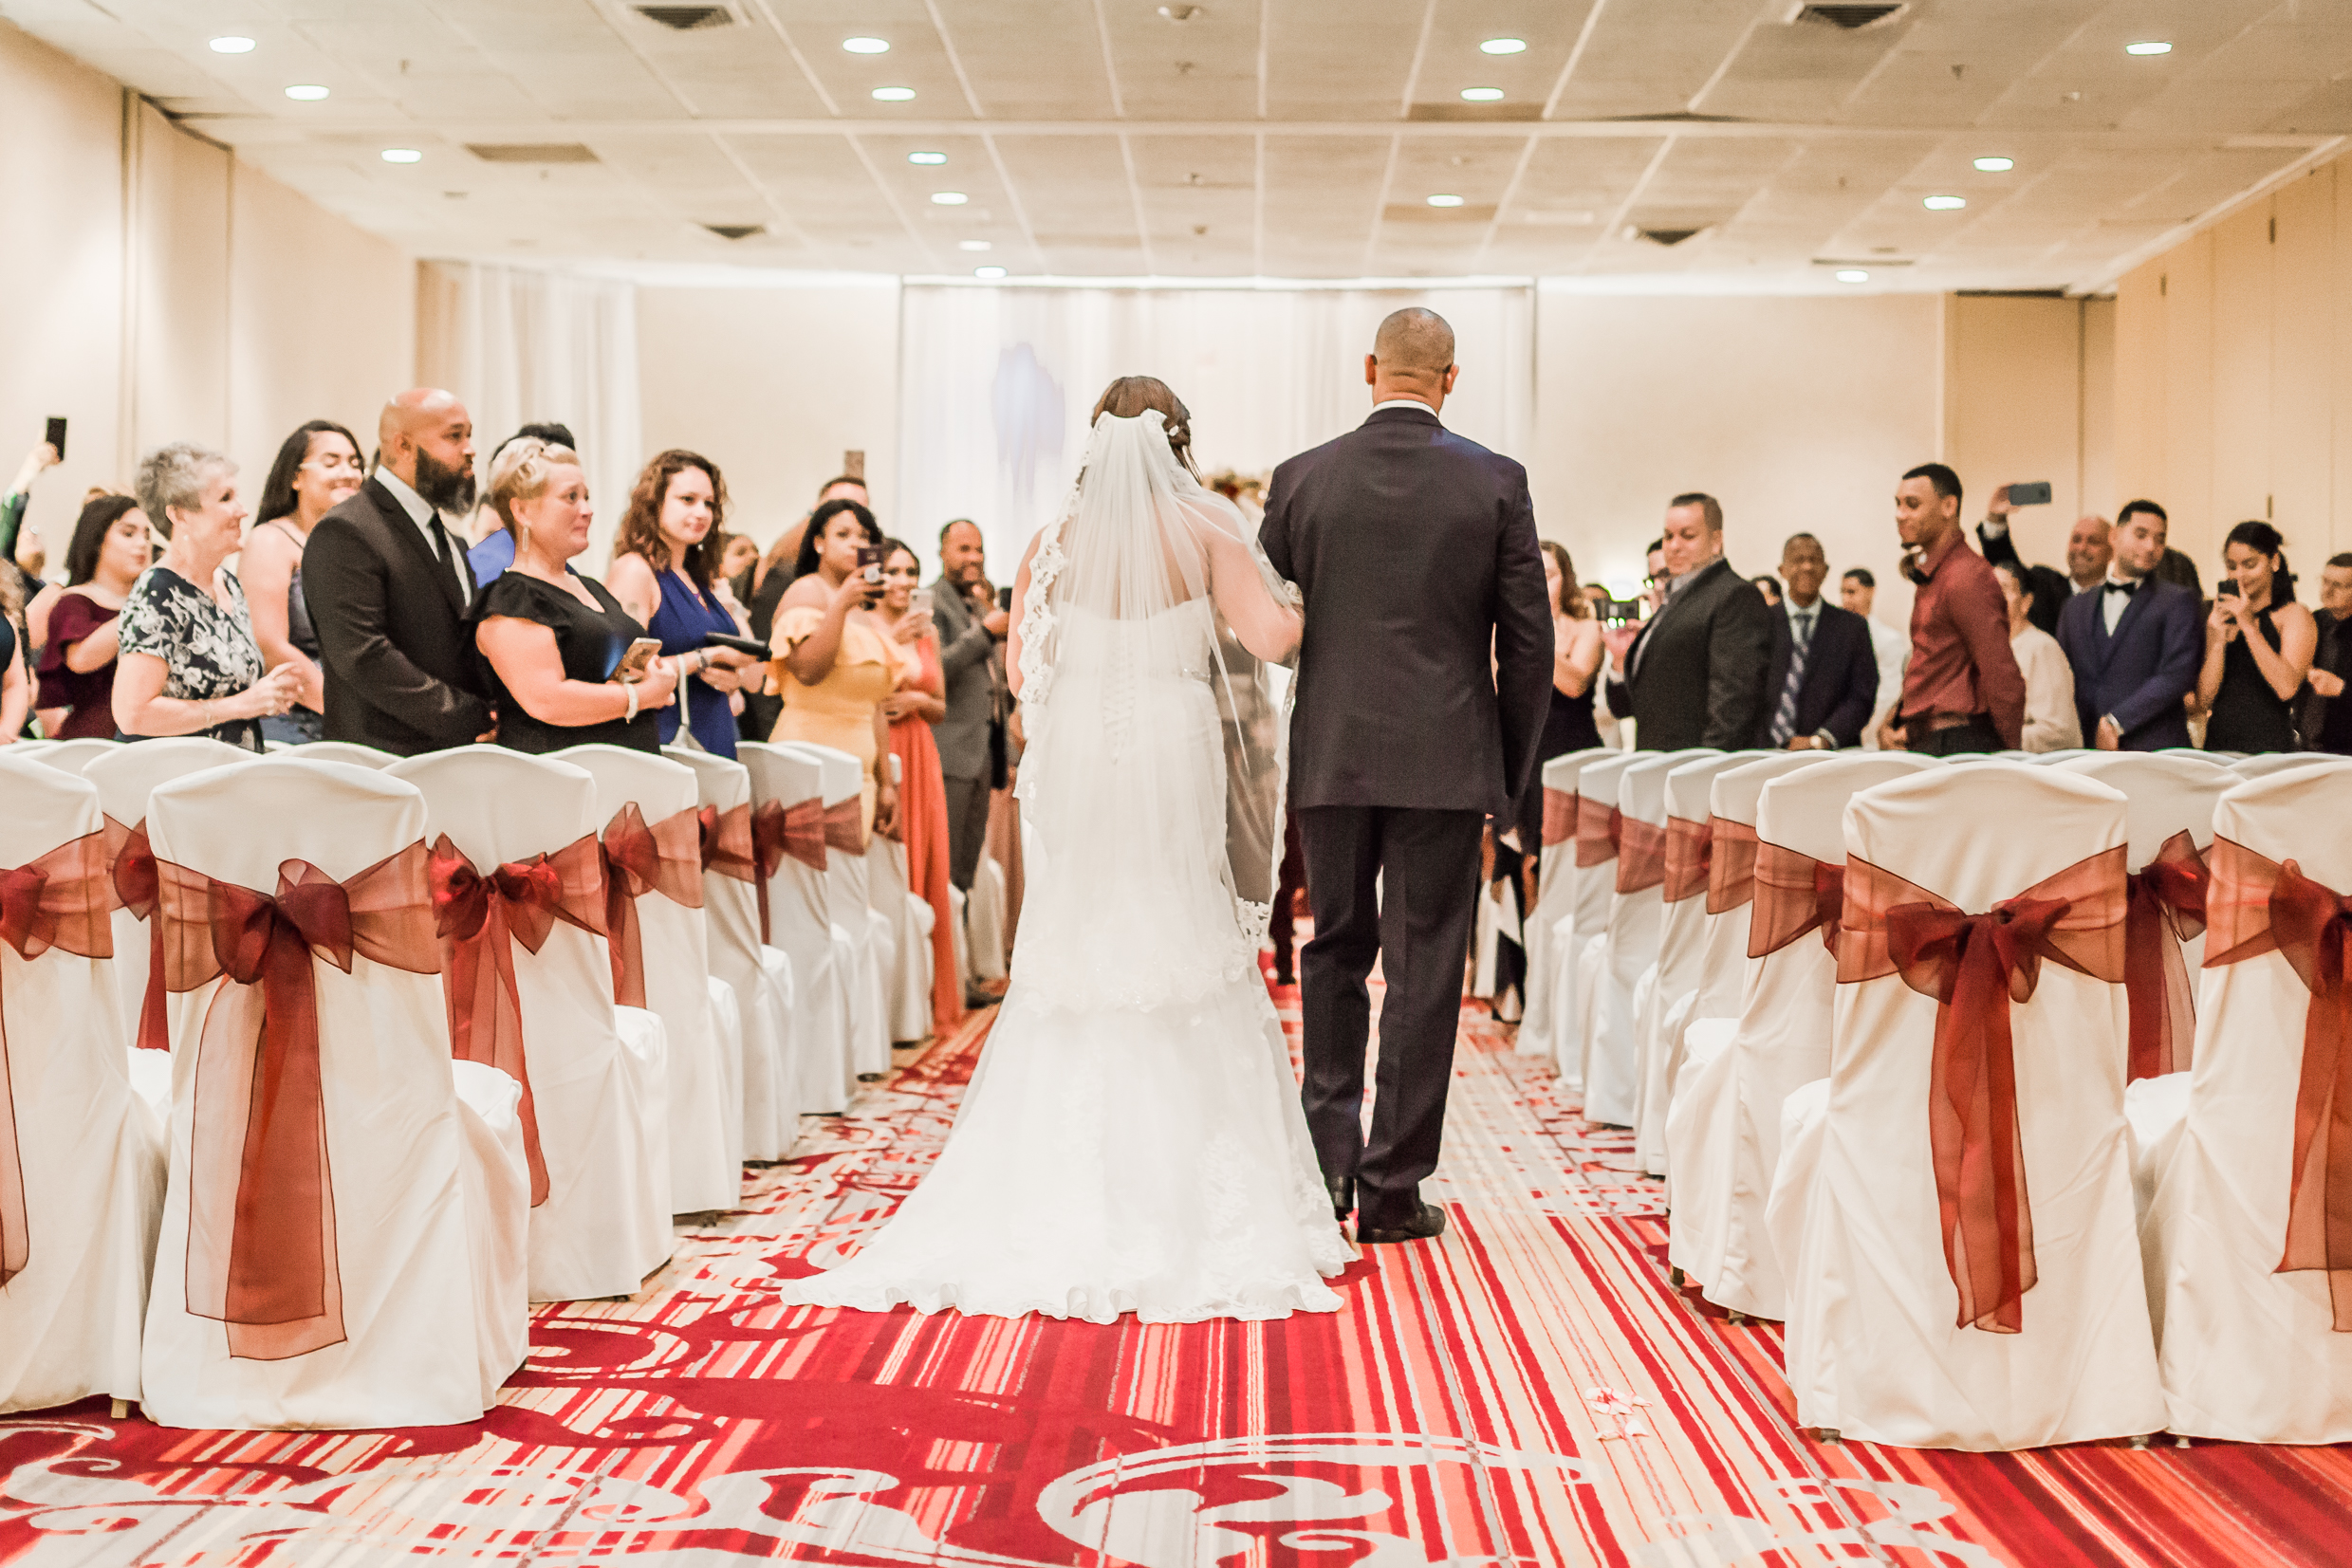 Crowne Plaza Hotel Reading Pennsylvania burgandy and gold  Wedding Lytle Photo Co (1 of 1)-2.jpg